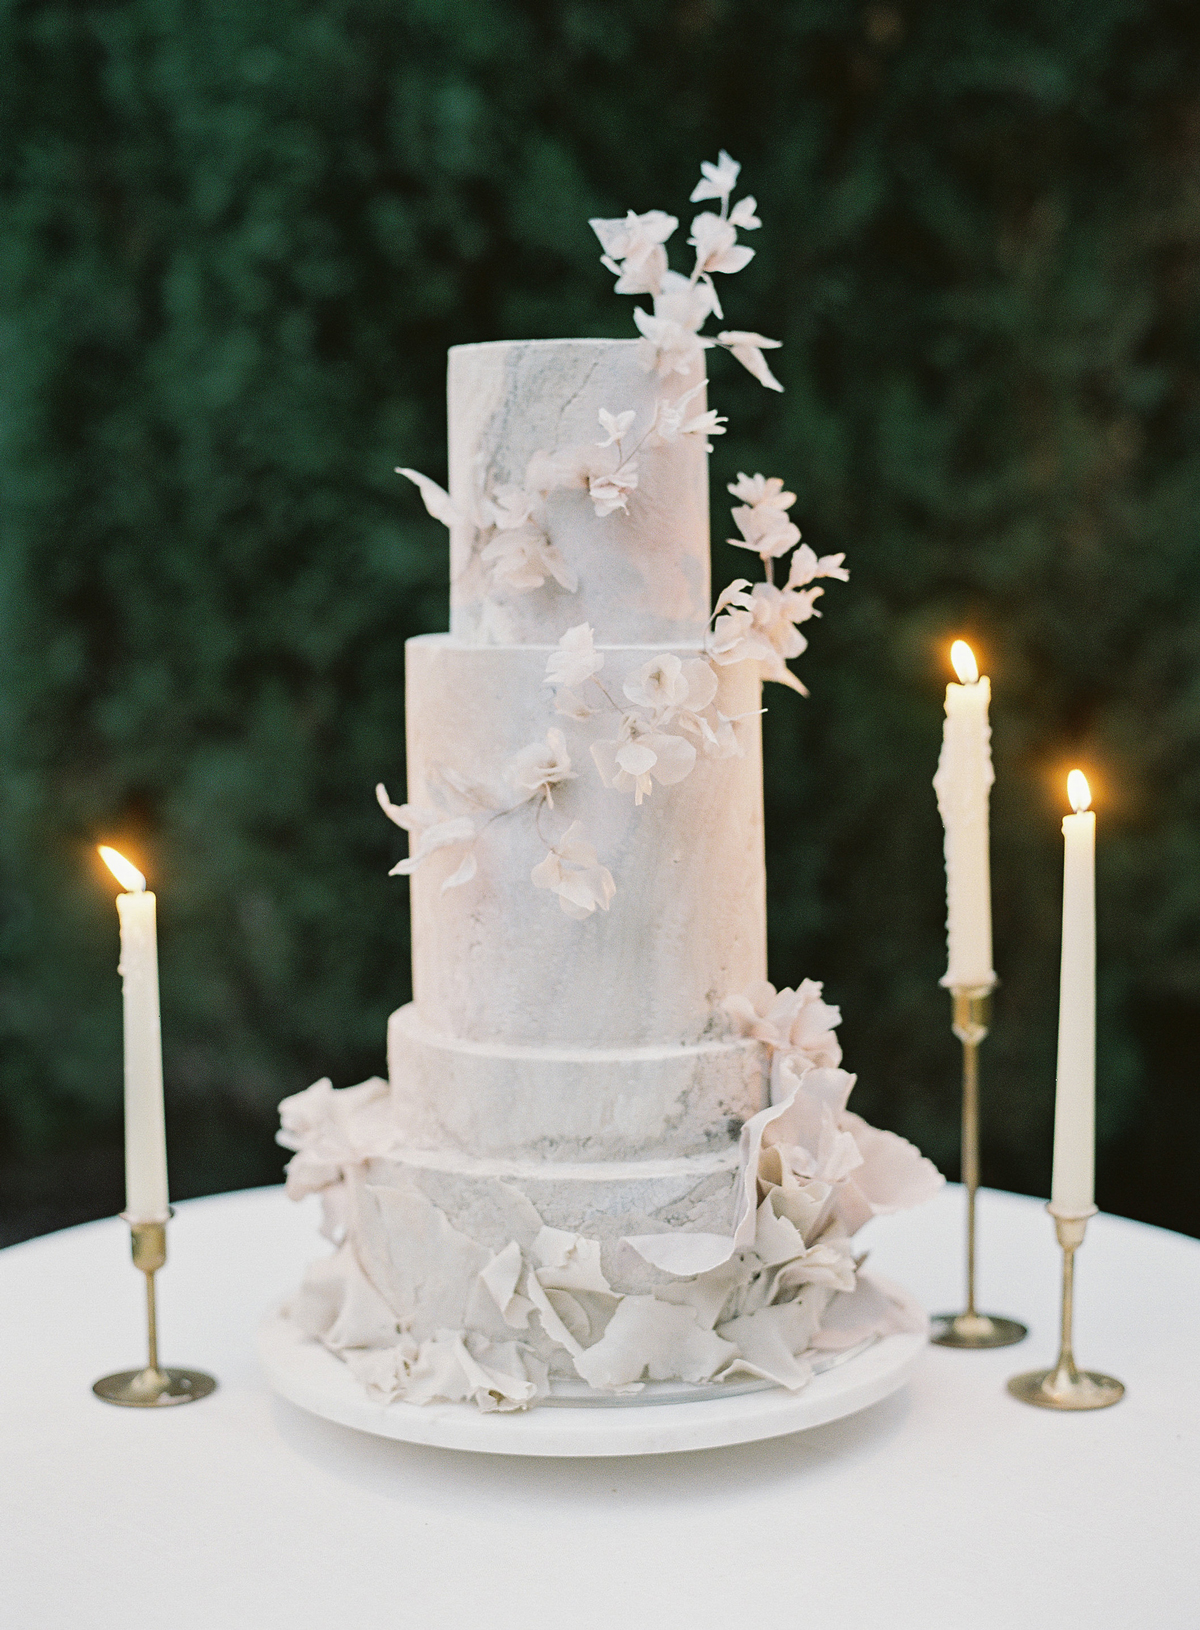 How Long Can You Really Save the Top Tier of Your Wedding Cake For?